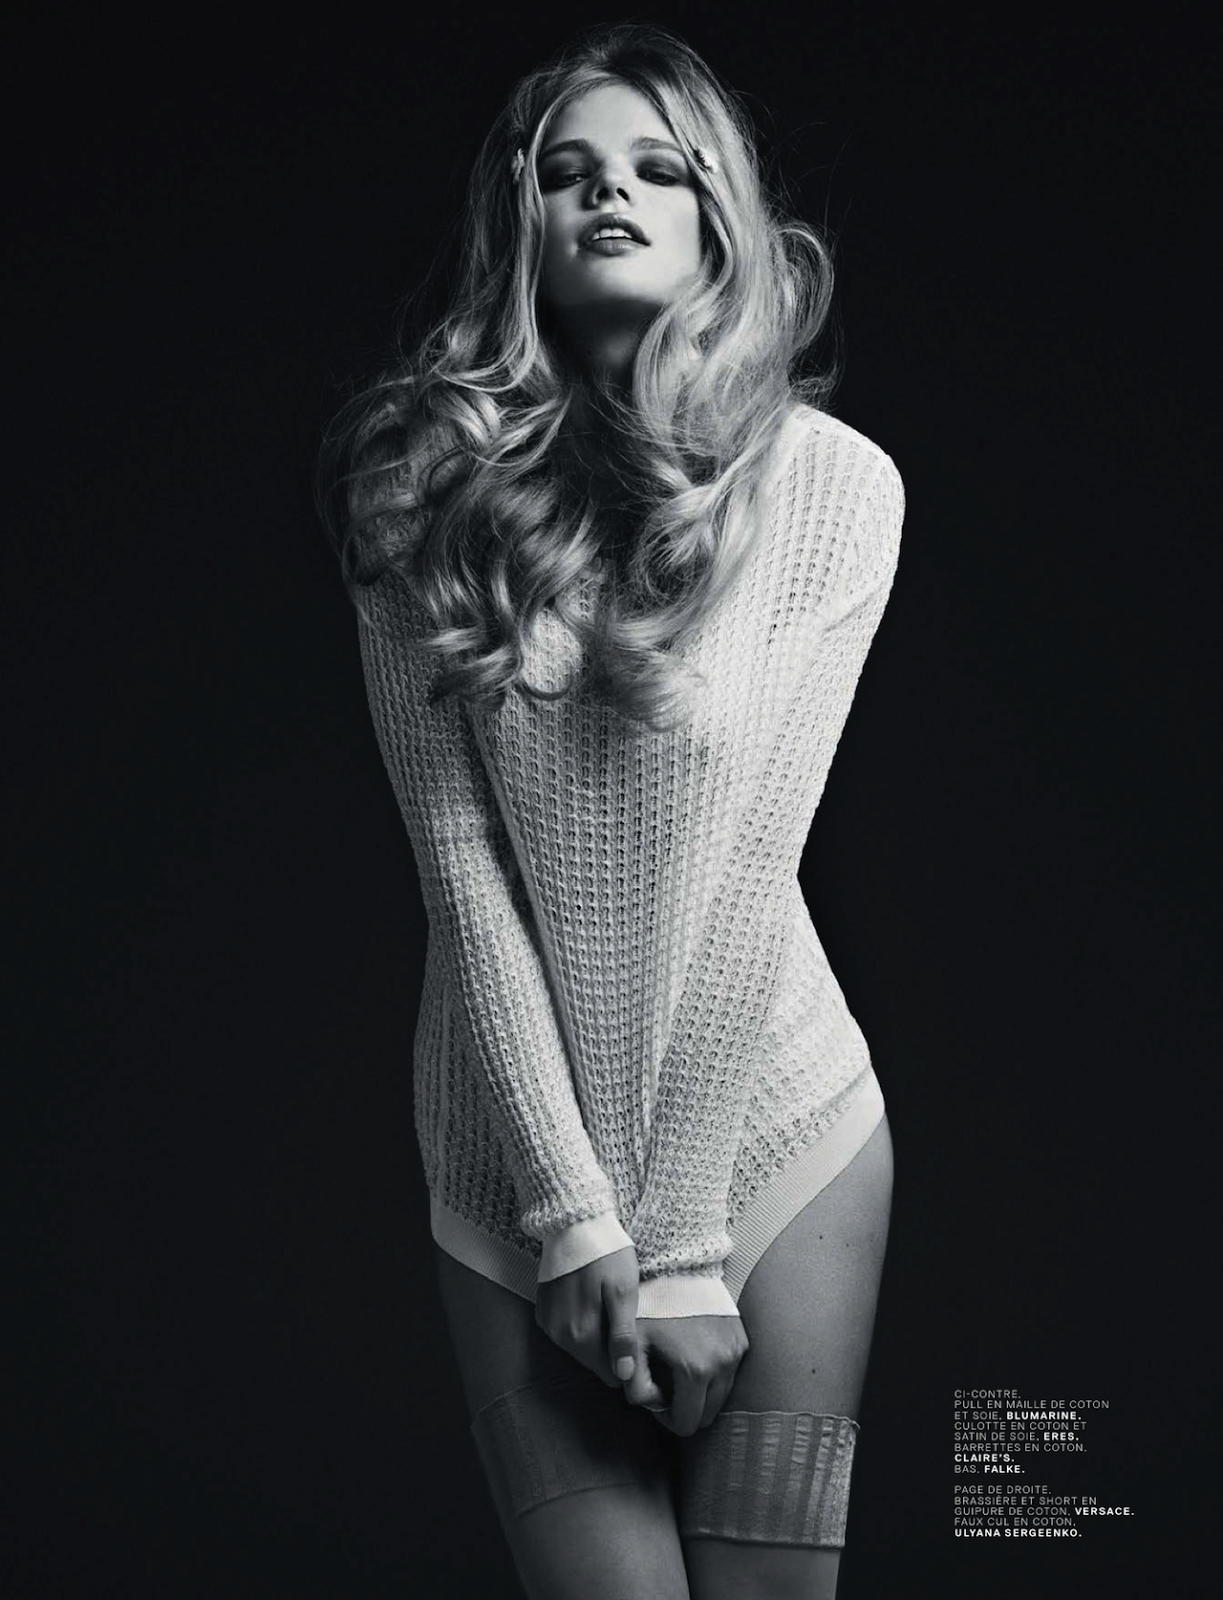 Cicciolinas Valerie Van Der Graaf And Amber Anderson By Stian Foss For Jalouse May 2013 2